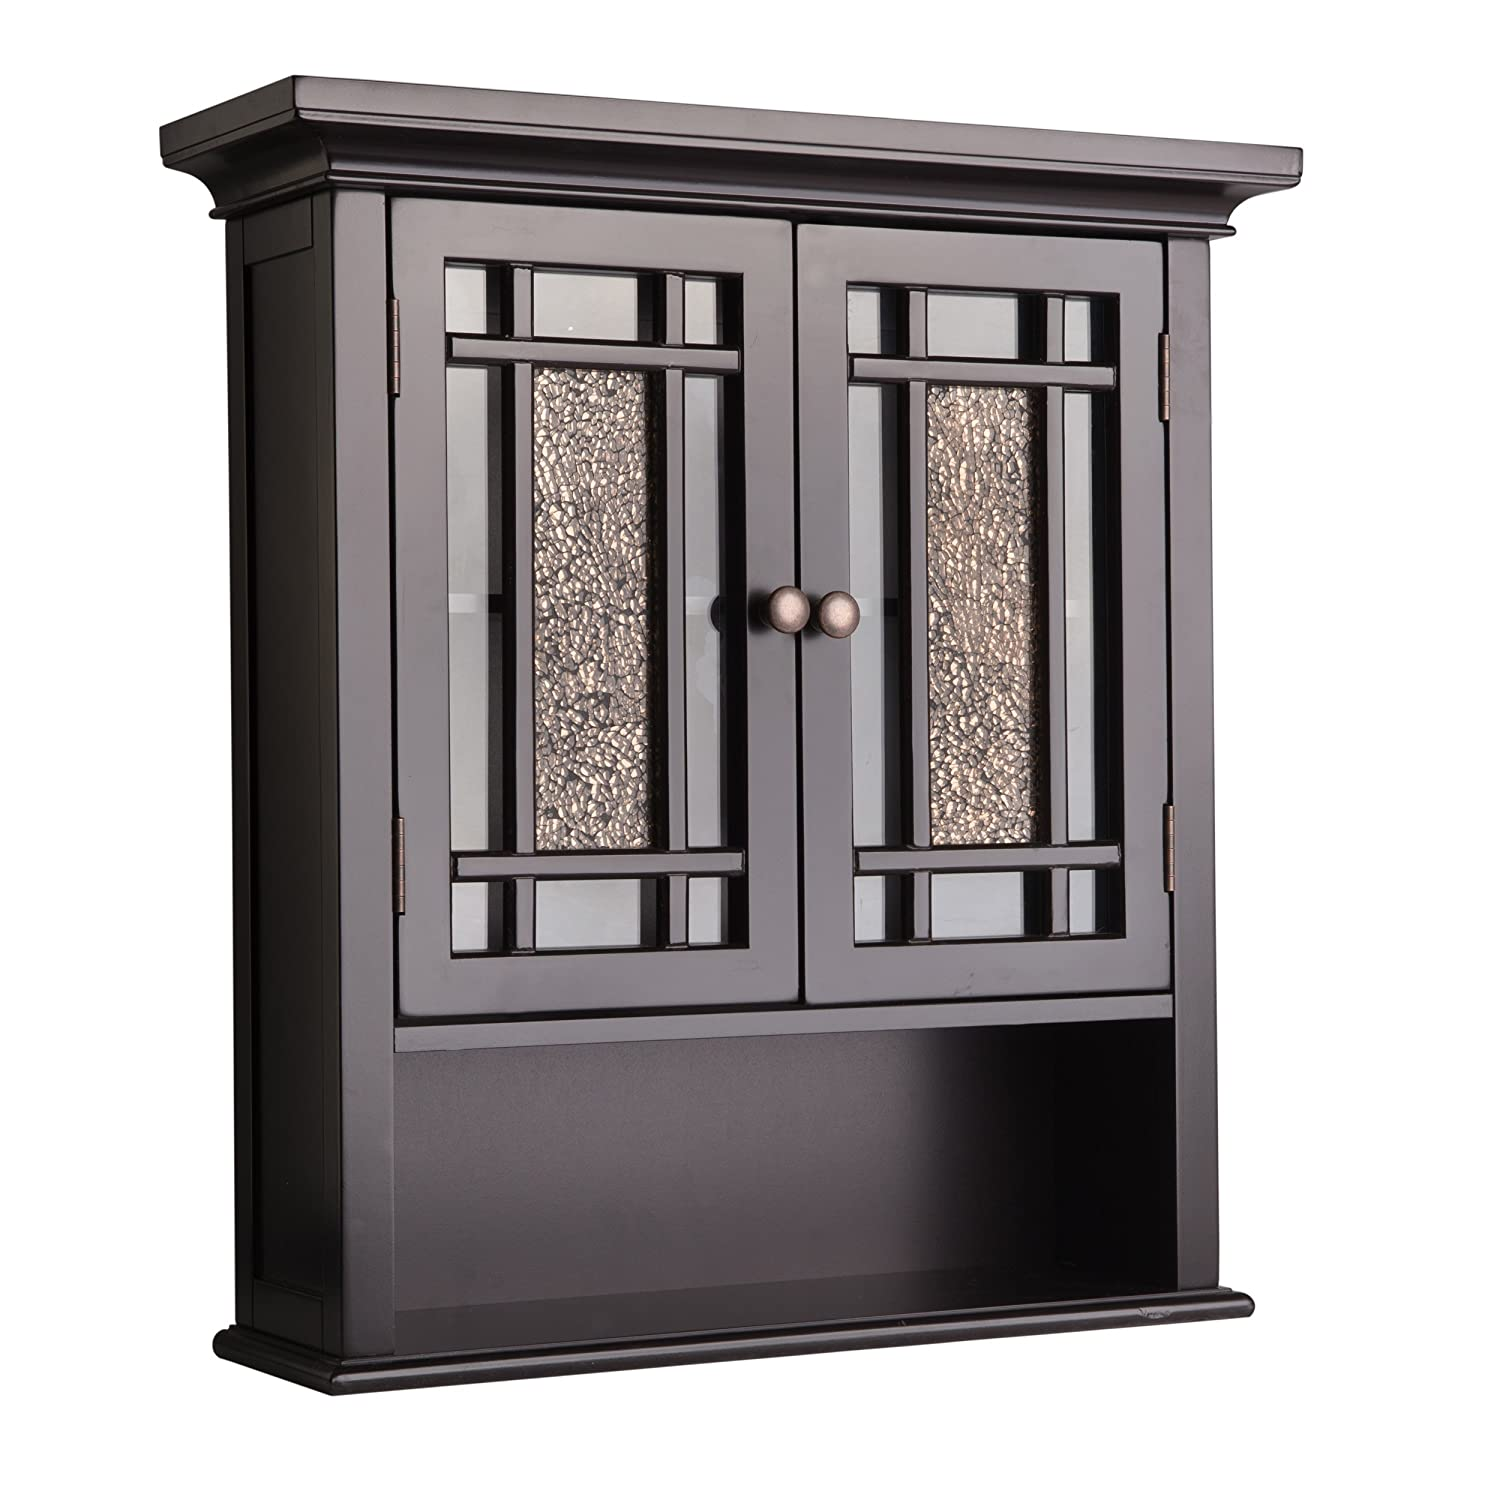 Amazon.com: Elegant Home Fashions Whitney Wall Cabinet with 2 Doors ...